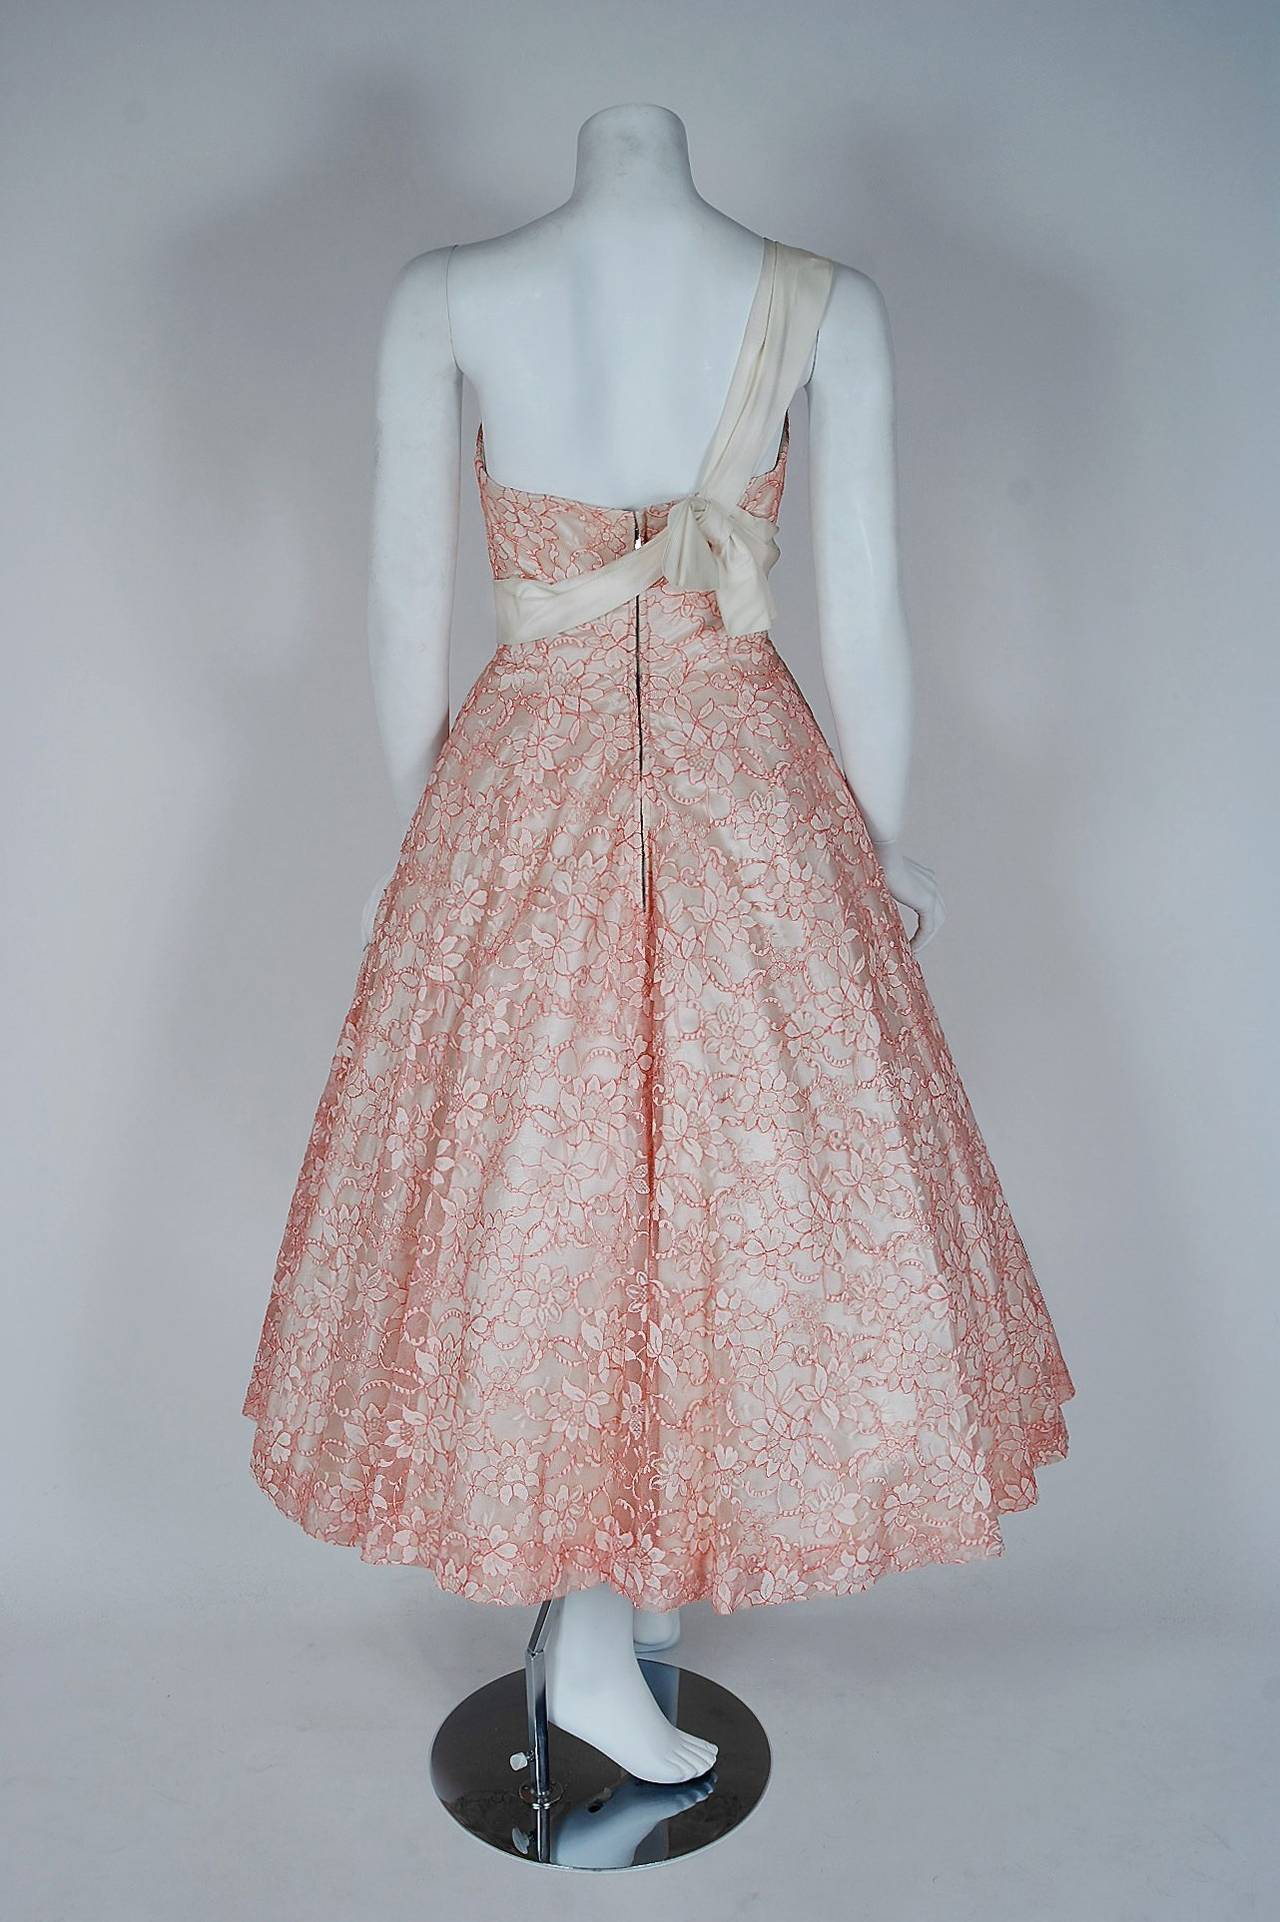 1950's Jacques Heim Haute-Couture Pink White Lace One-Shoulder Full Party Dress 5